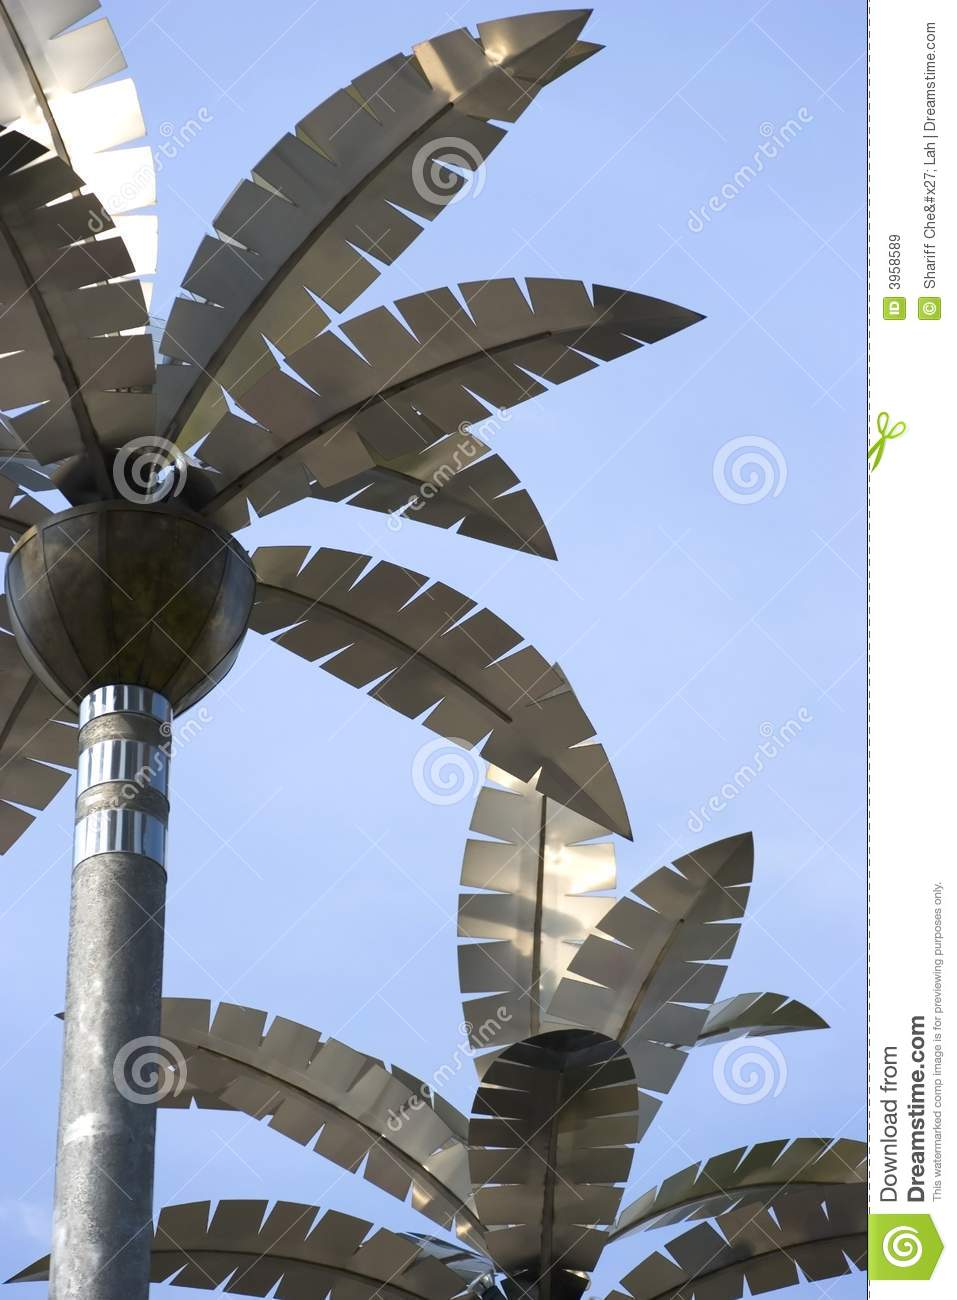 Stainless Steel Palm Trees Royalty Free Stock Images ...